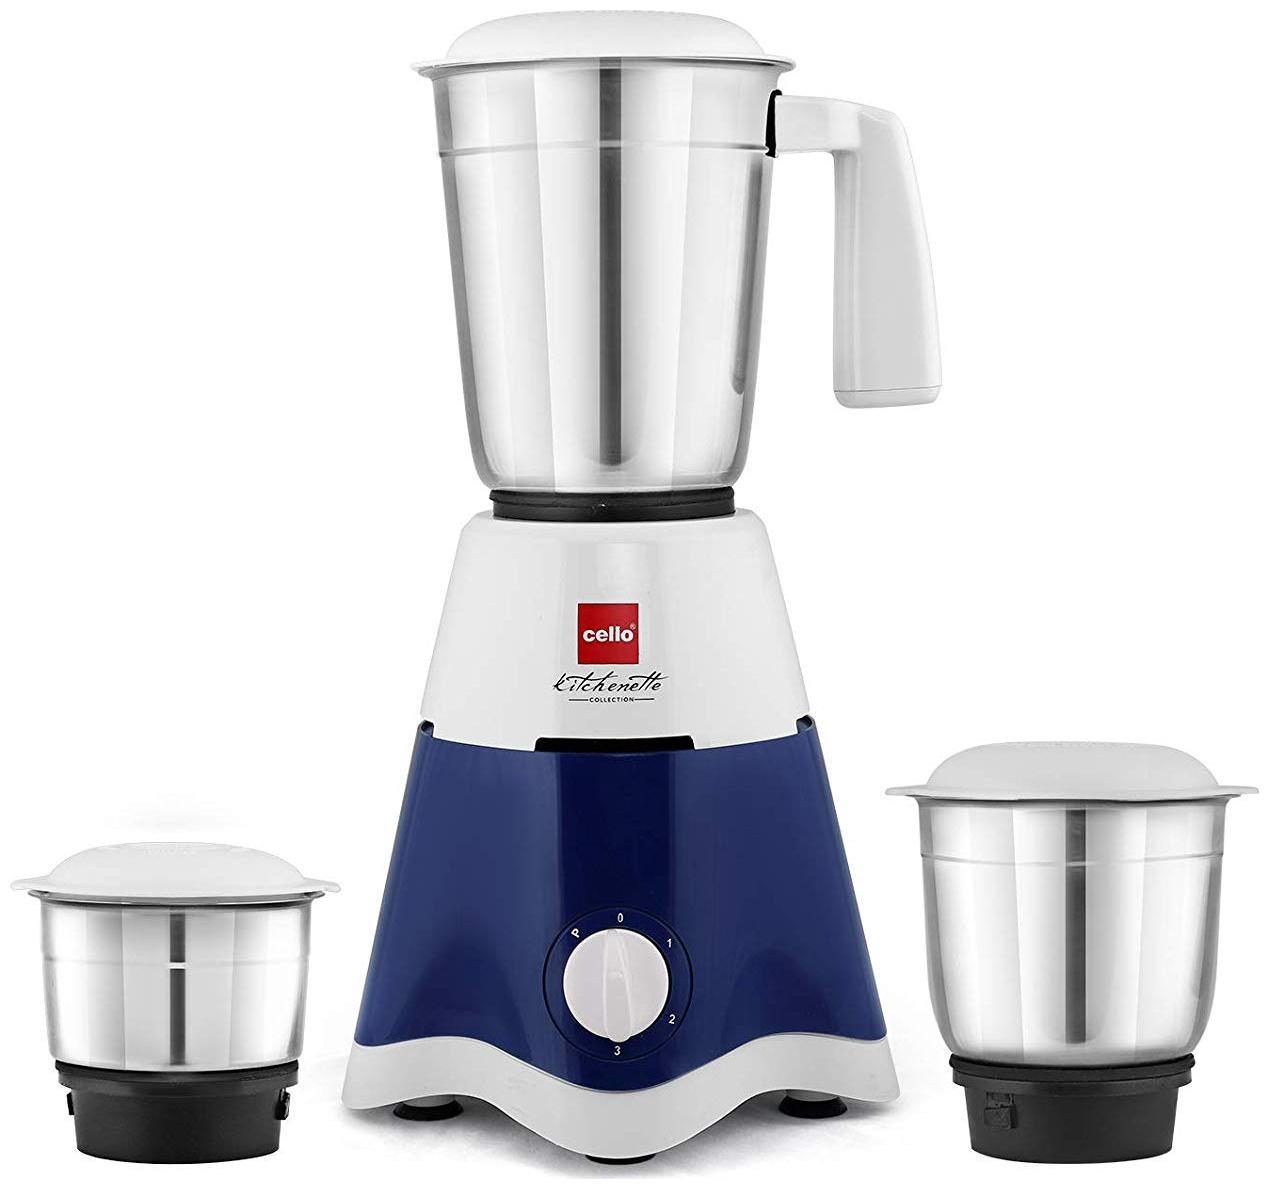 Cello Lifestyle Mixer 500 W 3 Jars Centrifugal Juicer ( White & Blue )